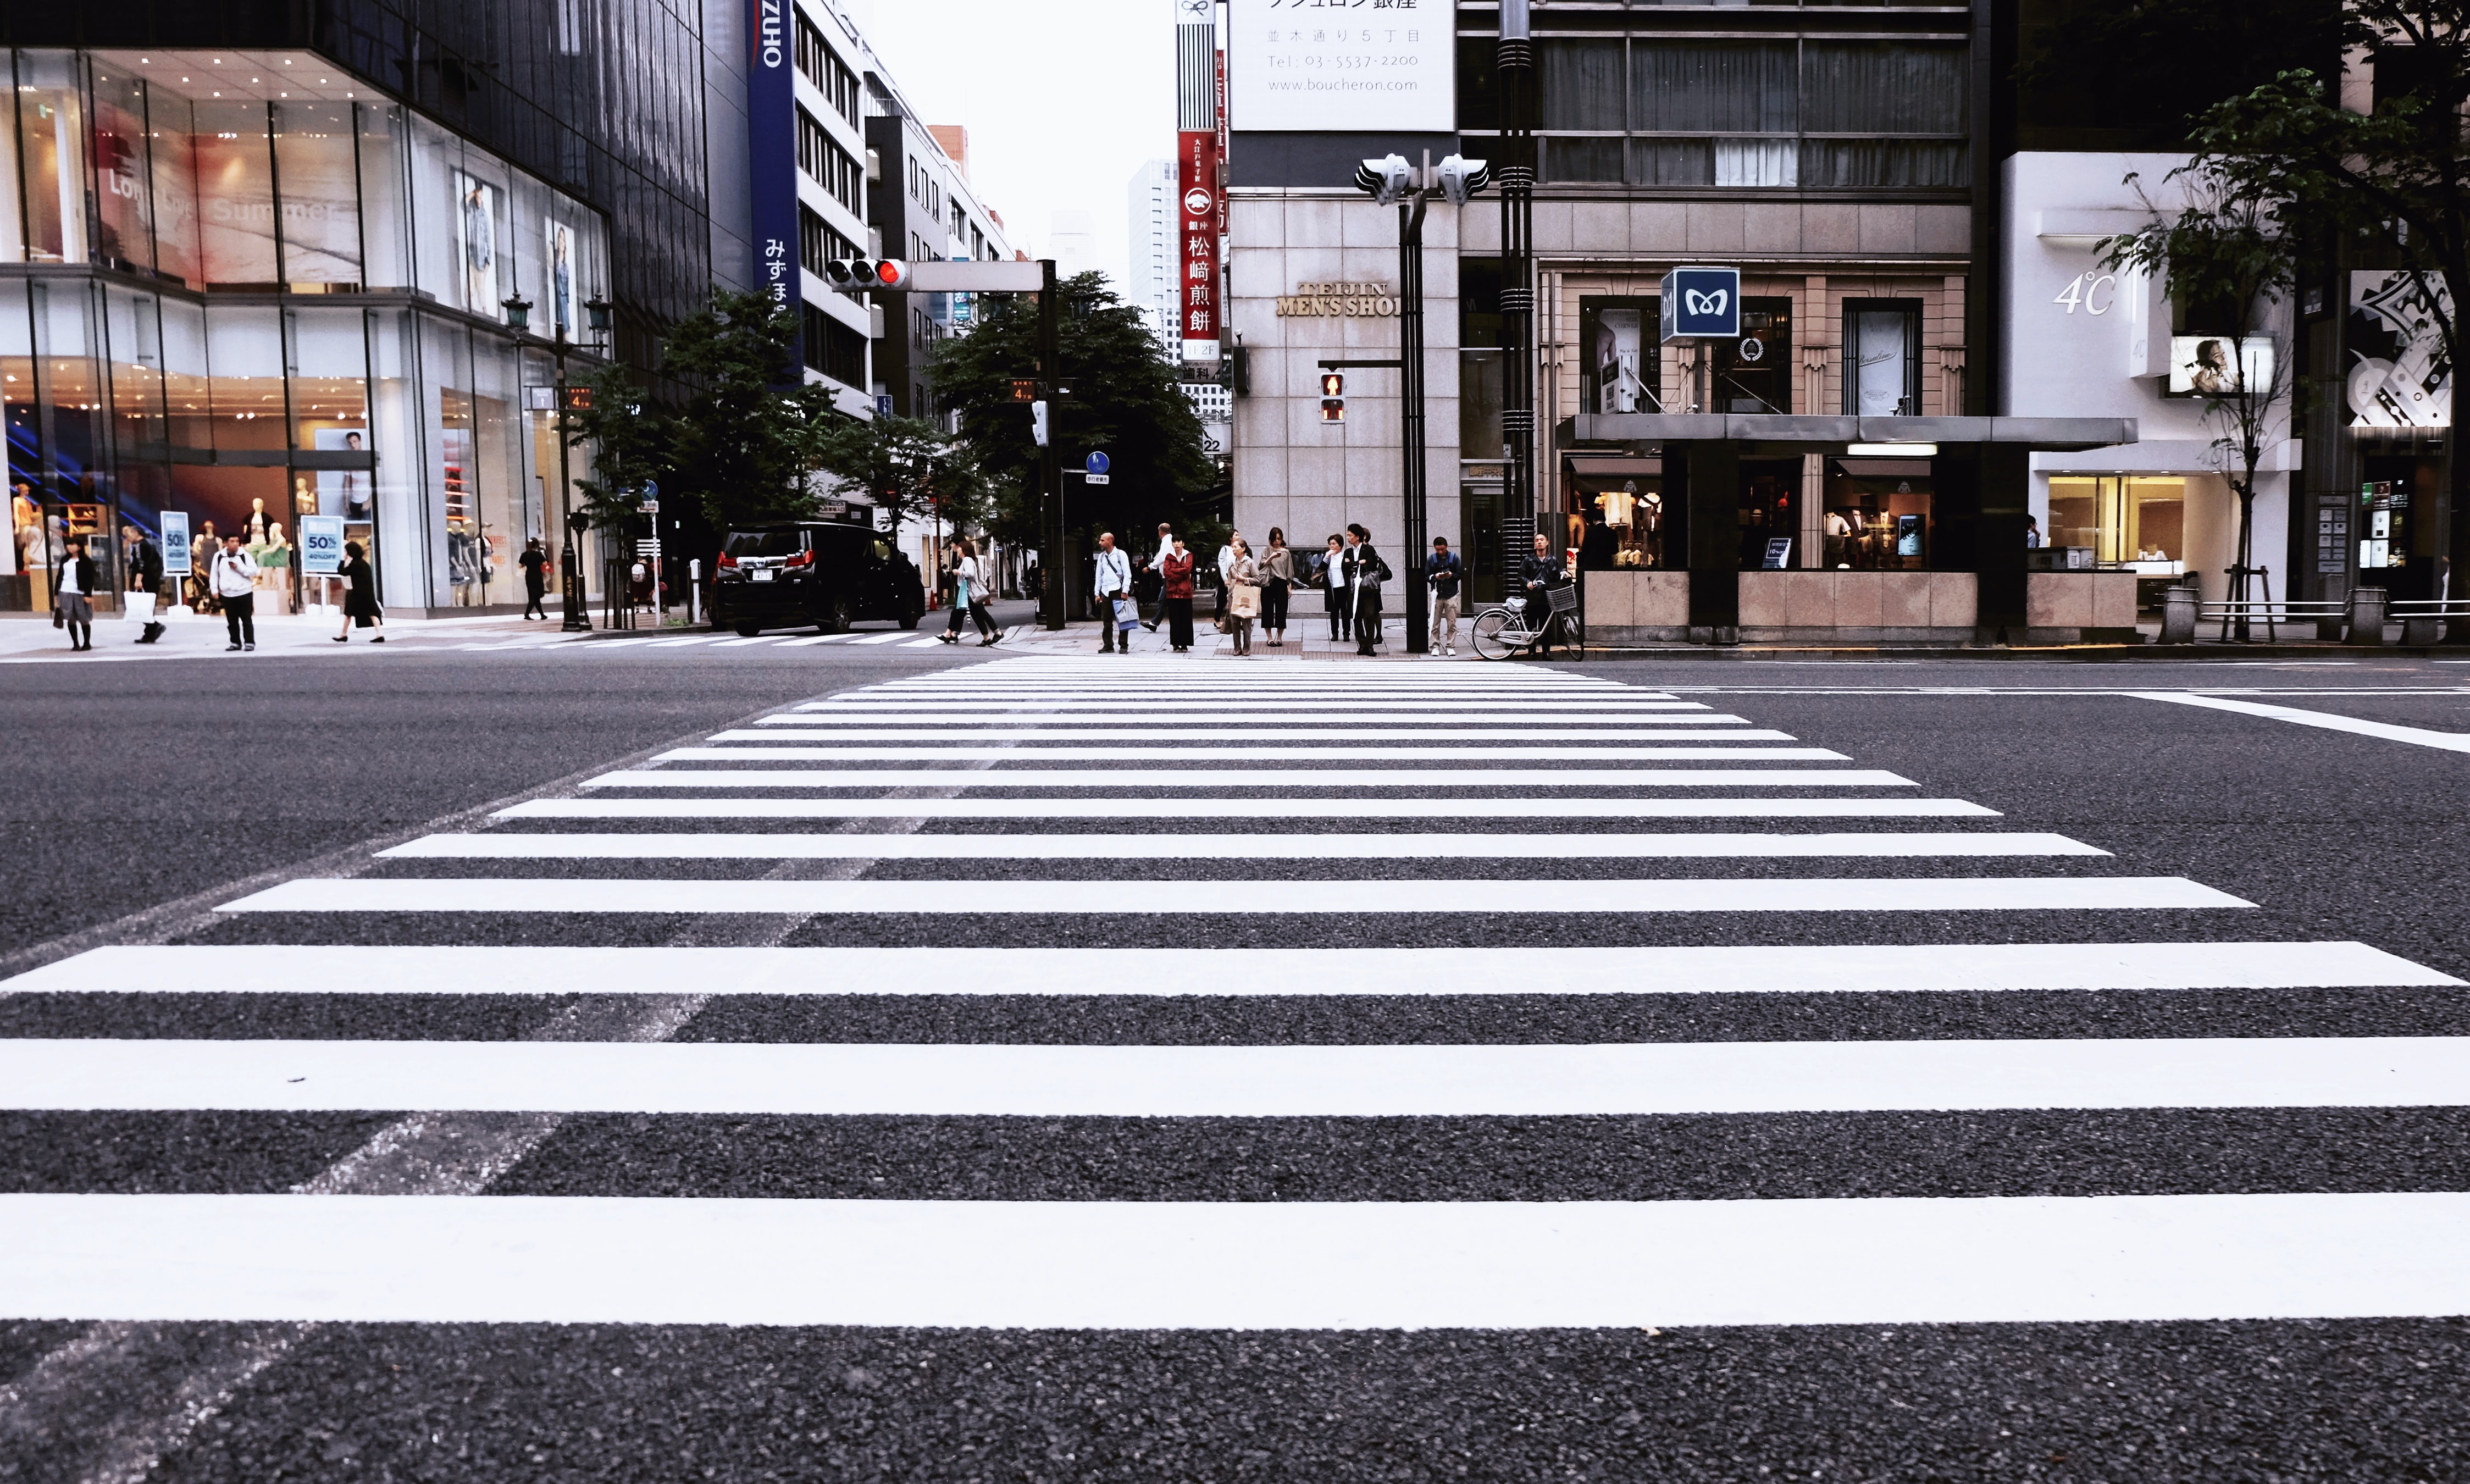 Pedestrians waiting to cross the street in Tokyo